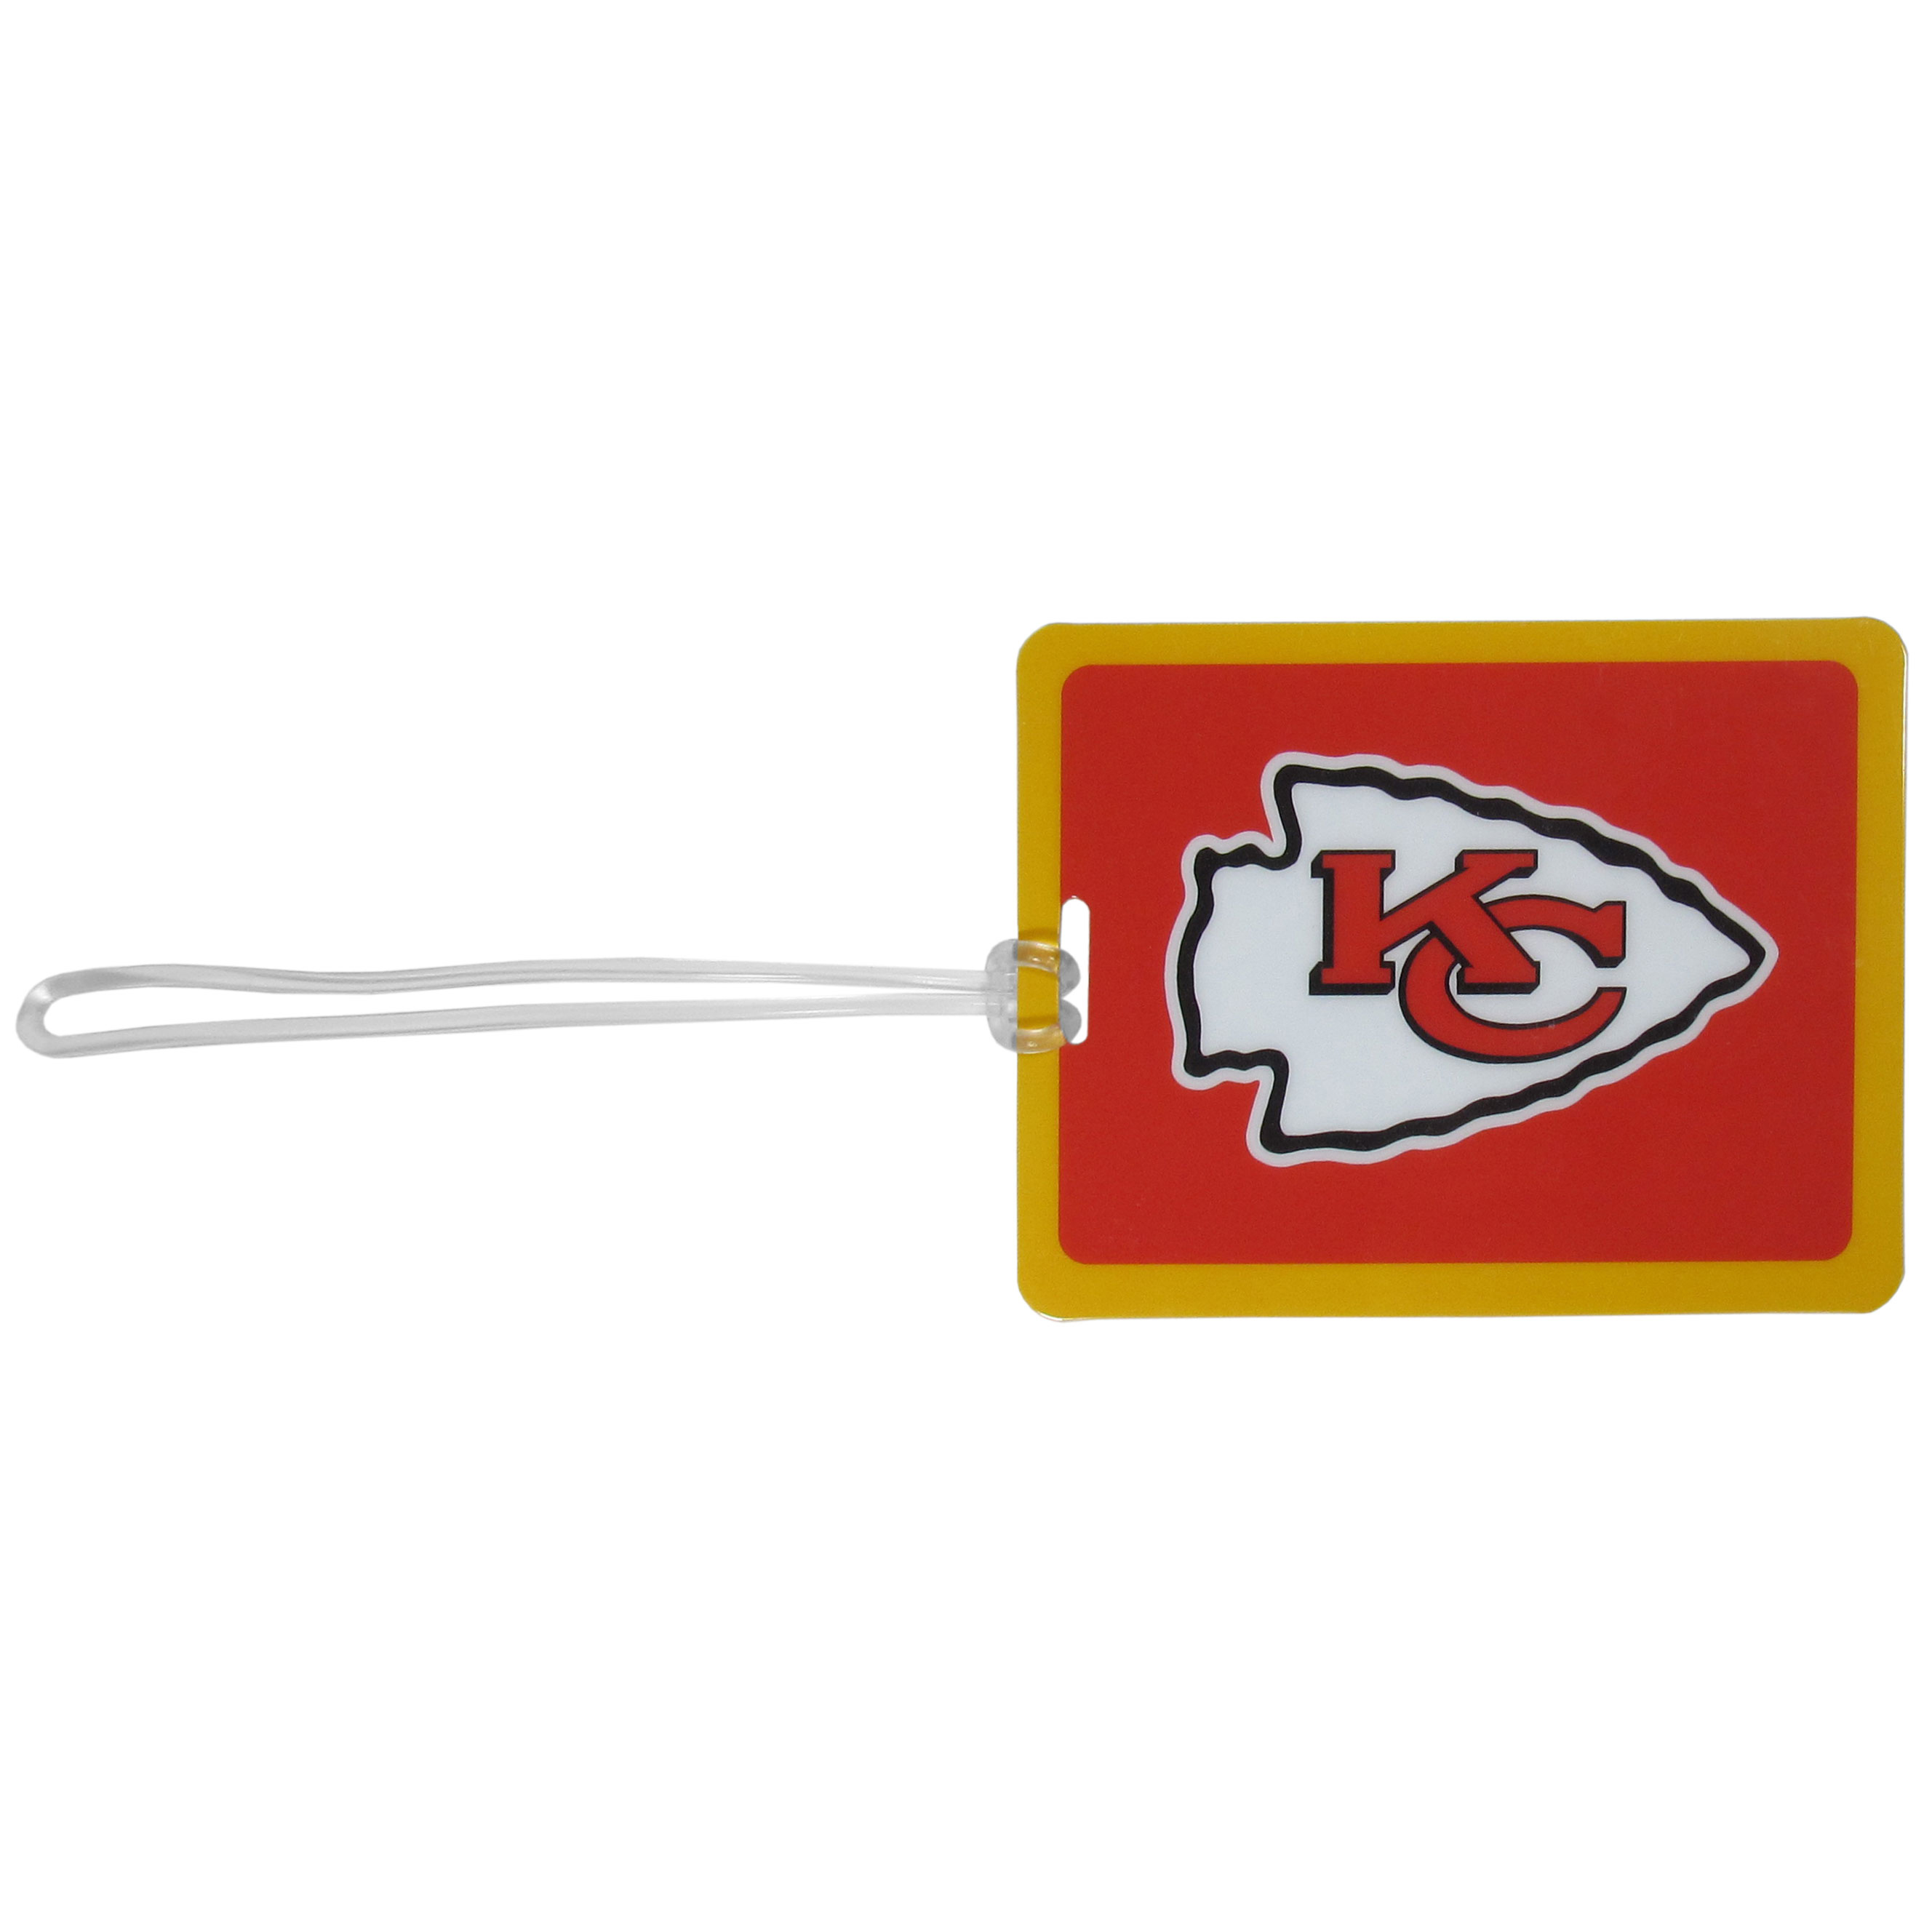 Kansas City Chiefs Vinyl Luggage Tag - Tired of trying to spot your suitcase or bag in a sea of luggage? Try our large and colorful Kansas City Chiefs luggage tag set. The tag is 4x3 inches and has a 5 inch cord to attach it easily to your bags, backpacks or luggage. The front of the tag features the team logo in a bright, team colored background and you can write you name, address and phone number on the back of the tag.